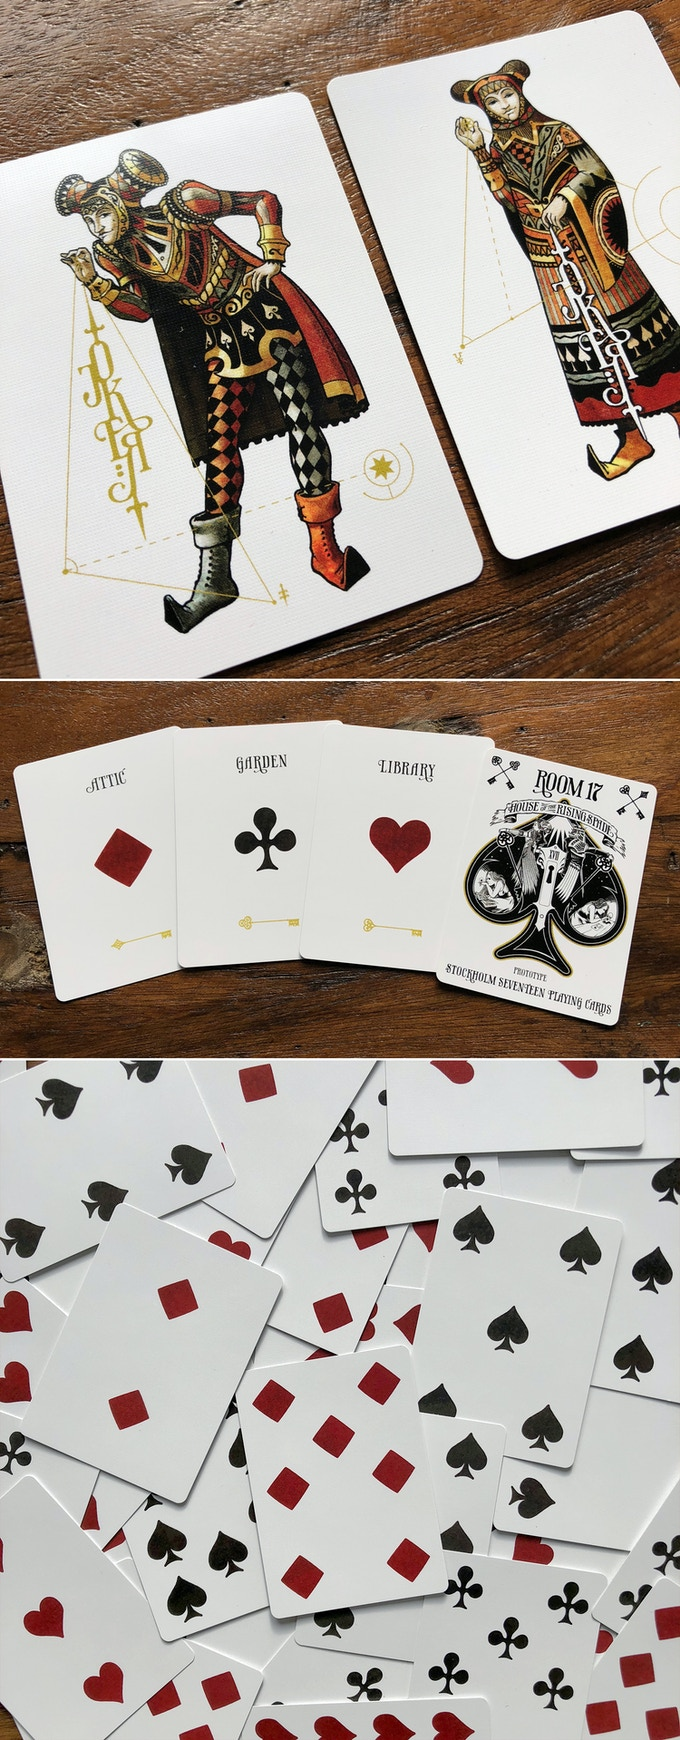 Faro variant: Jokers, Aces and index-less spot cards